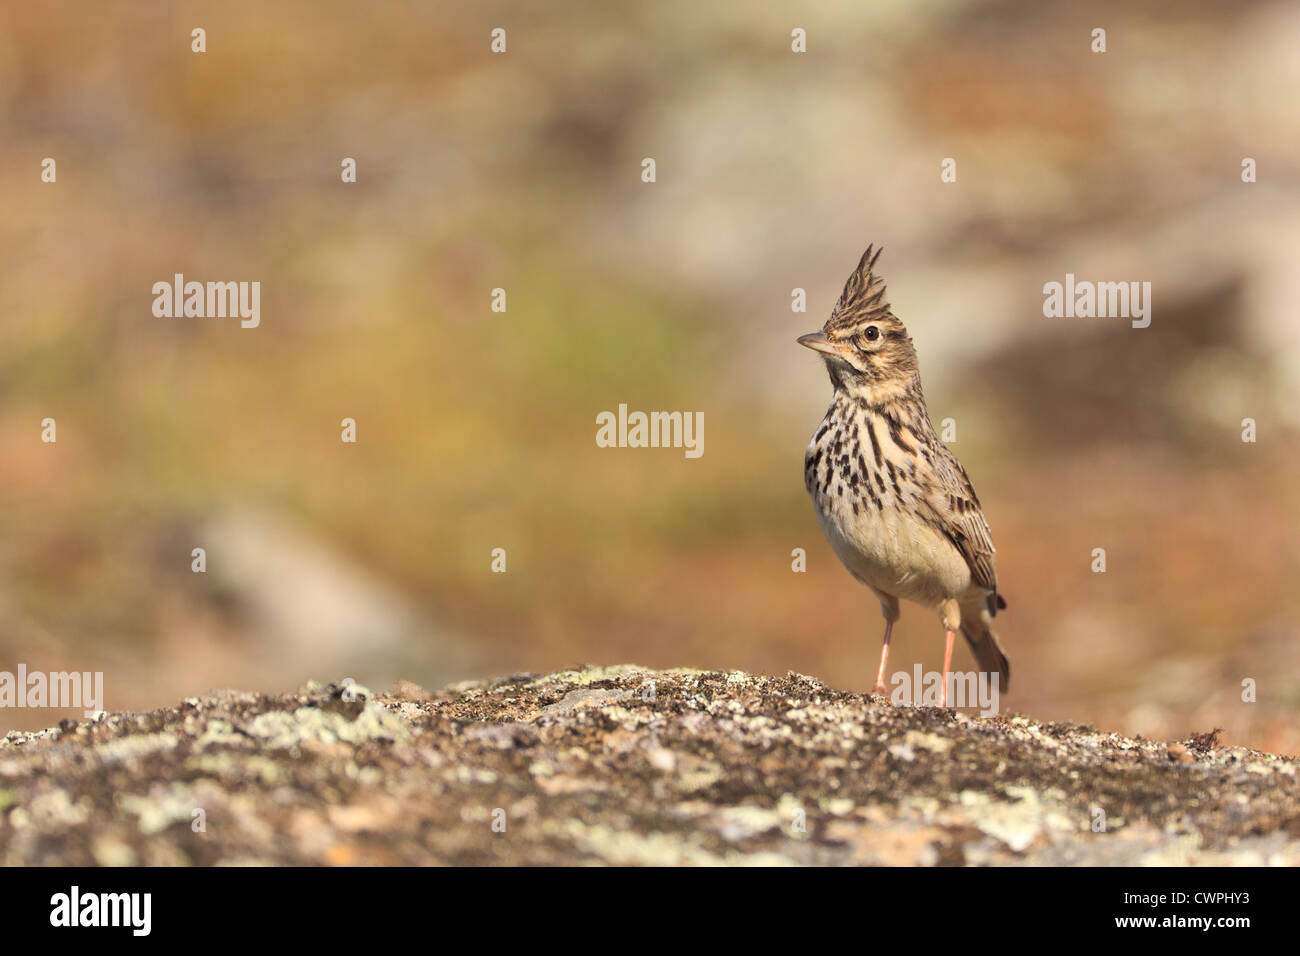 Crested Lark (Galerida cristata) perched on a stone. Extremadura. Spain. Stock Photo